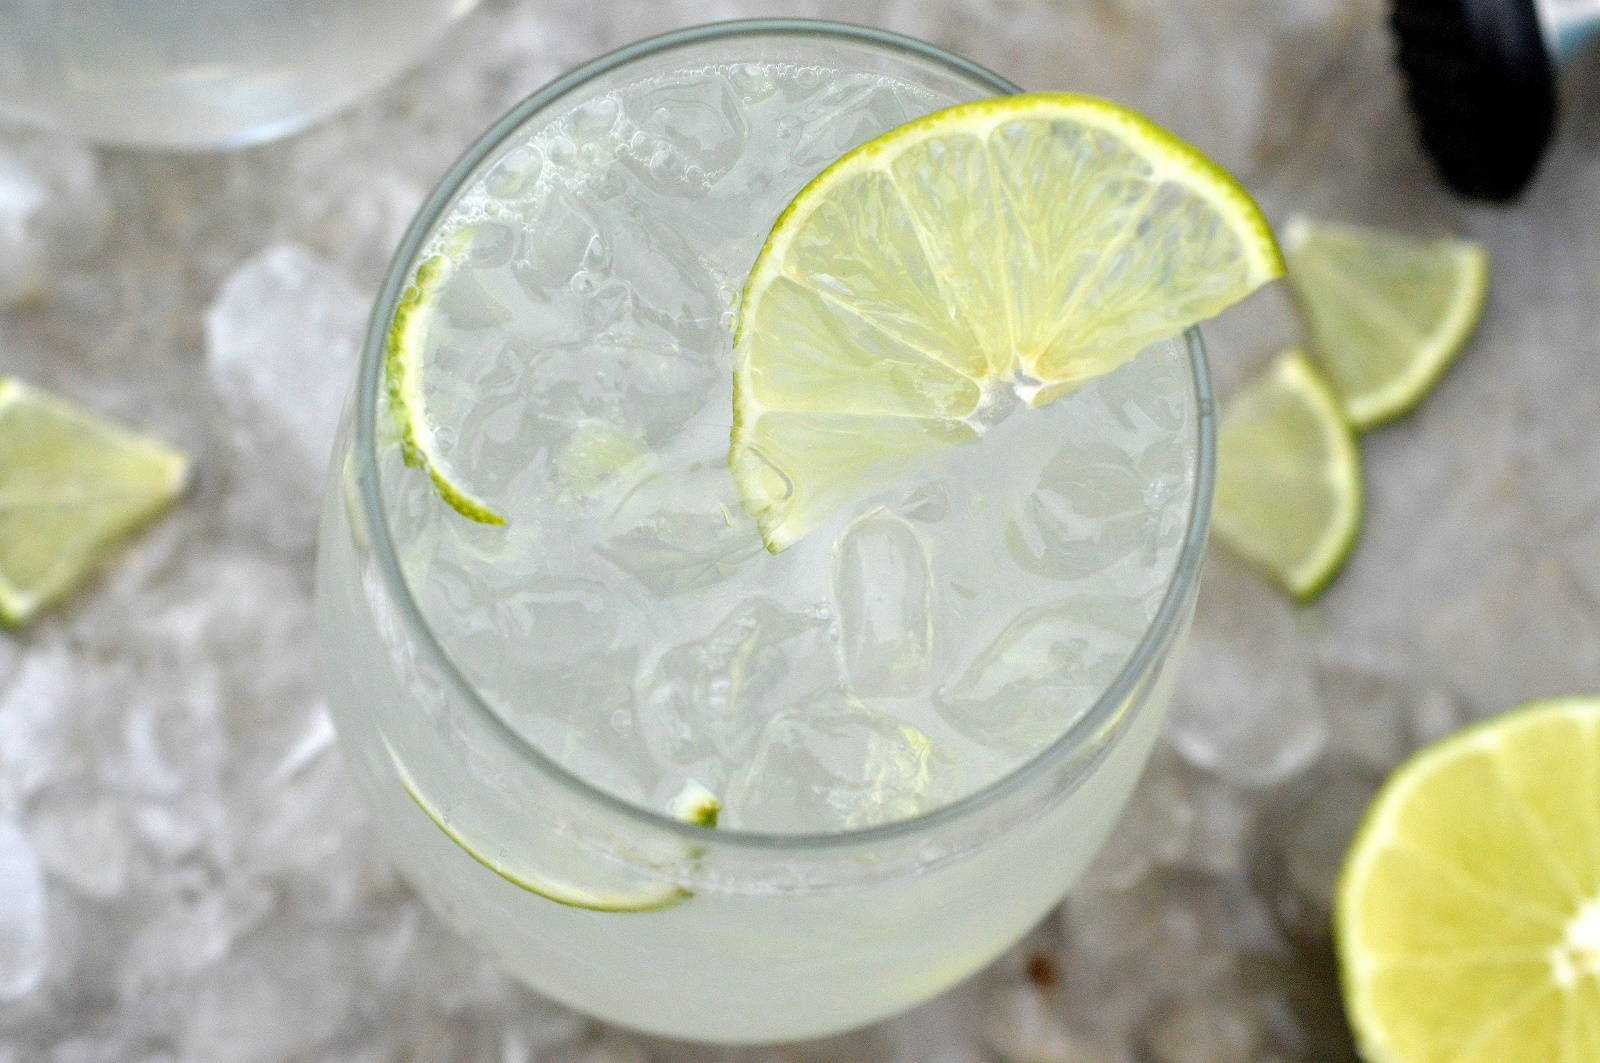 Homemade Low Carb Vodka Lime Coolers - Half the calories of a traditional cooler plus...You know whats in it! Delicious & refreshing too!